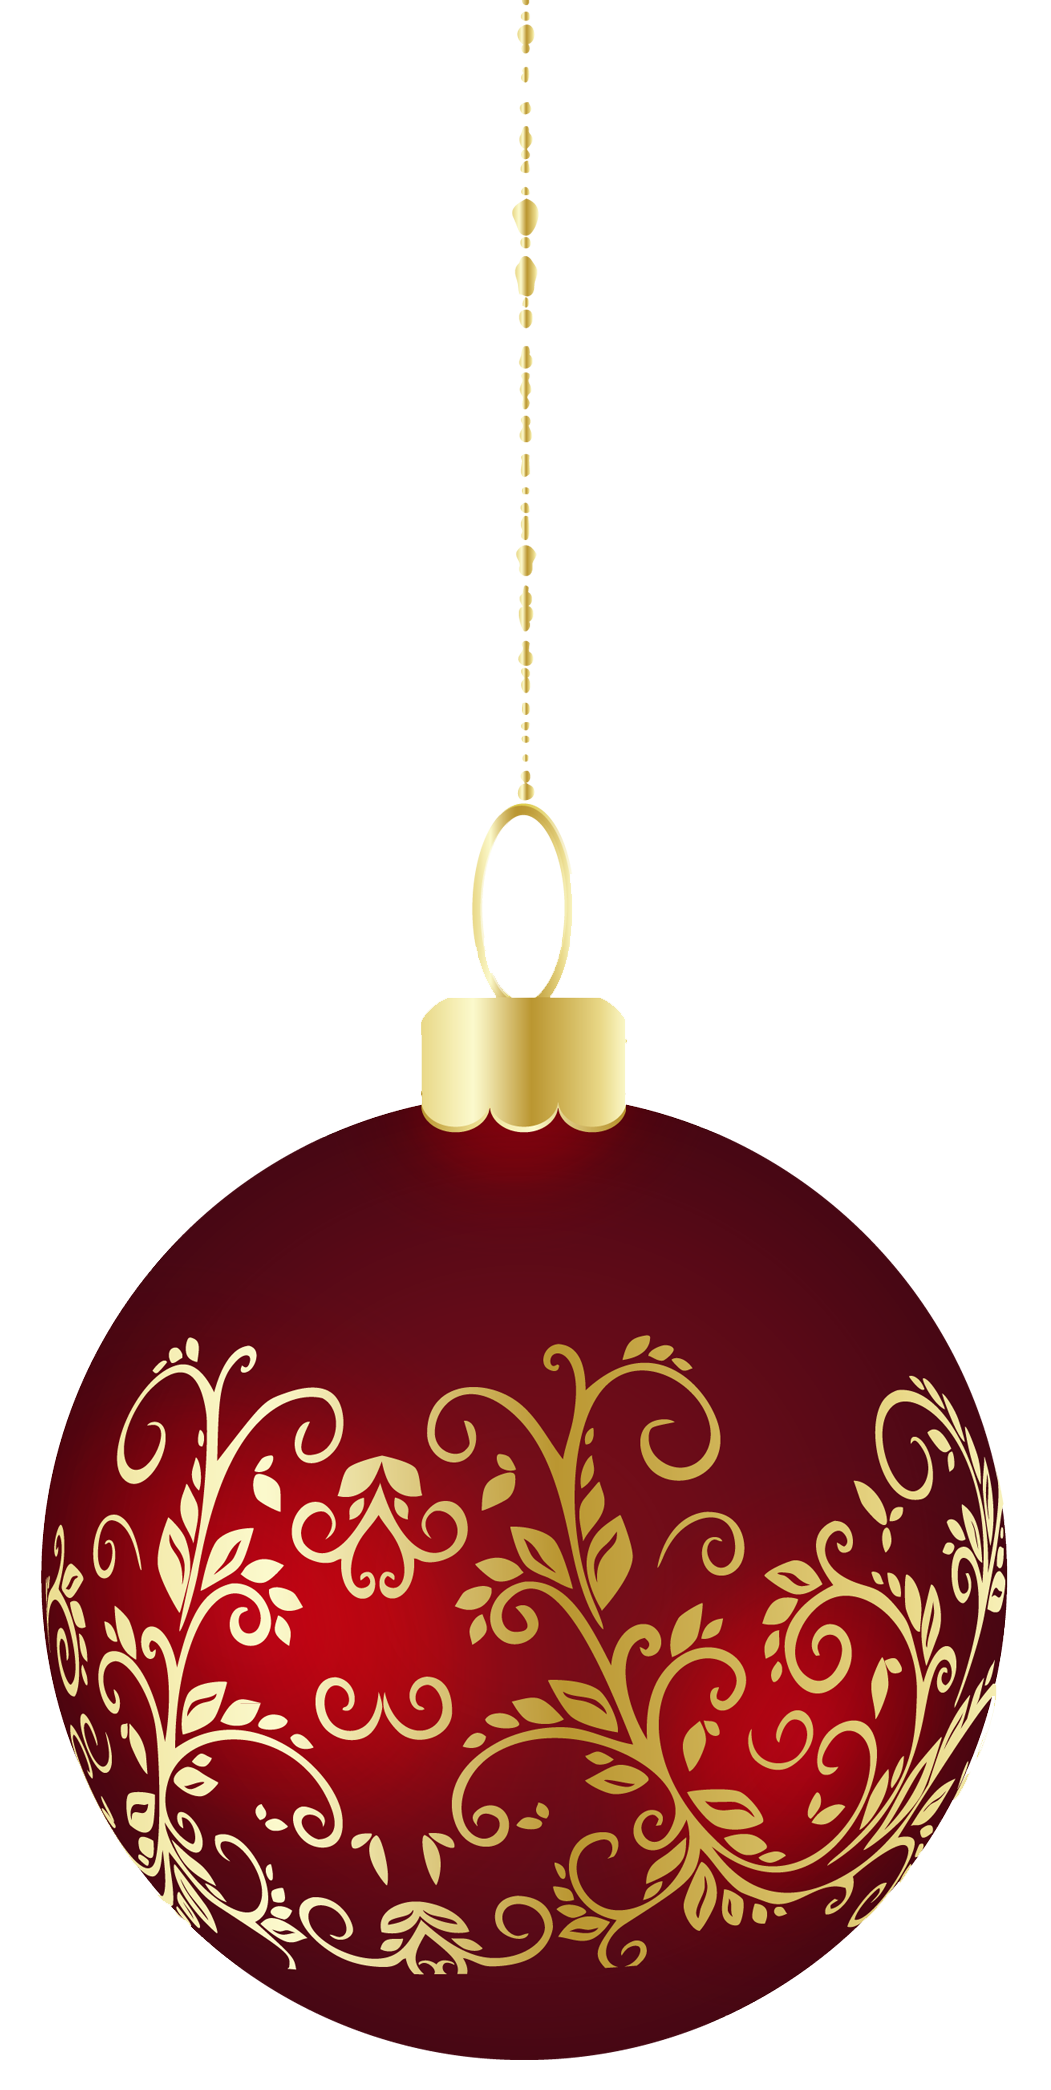 Large transparent christmas ball ornament png clipart for Christmas holiday ornaments